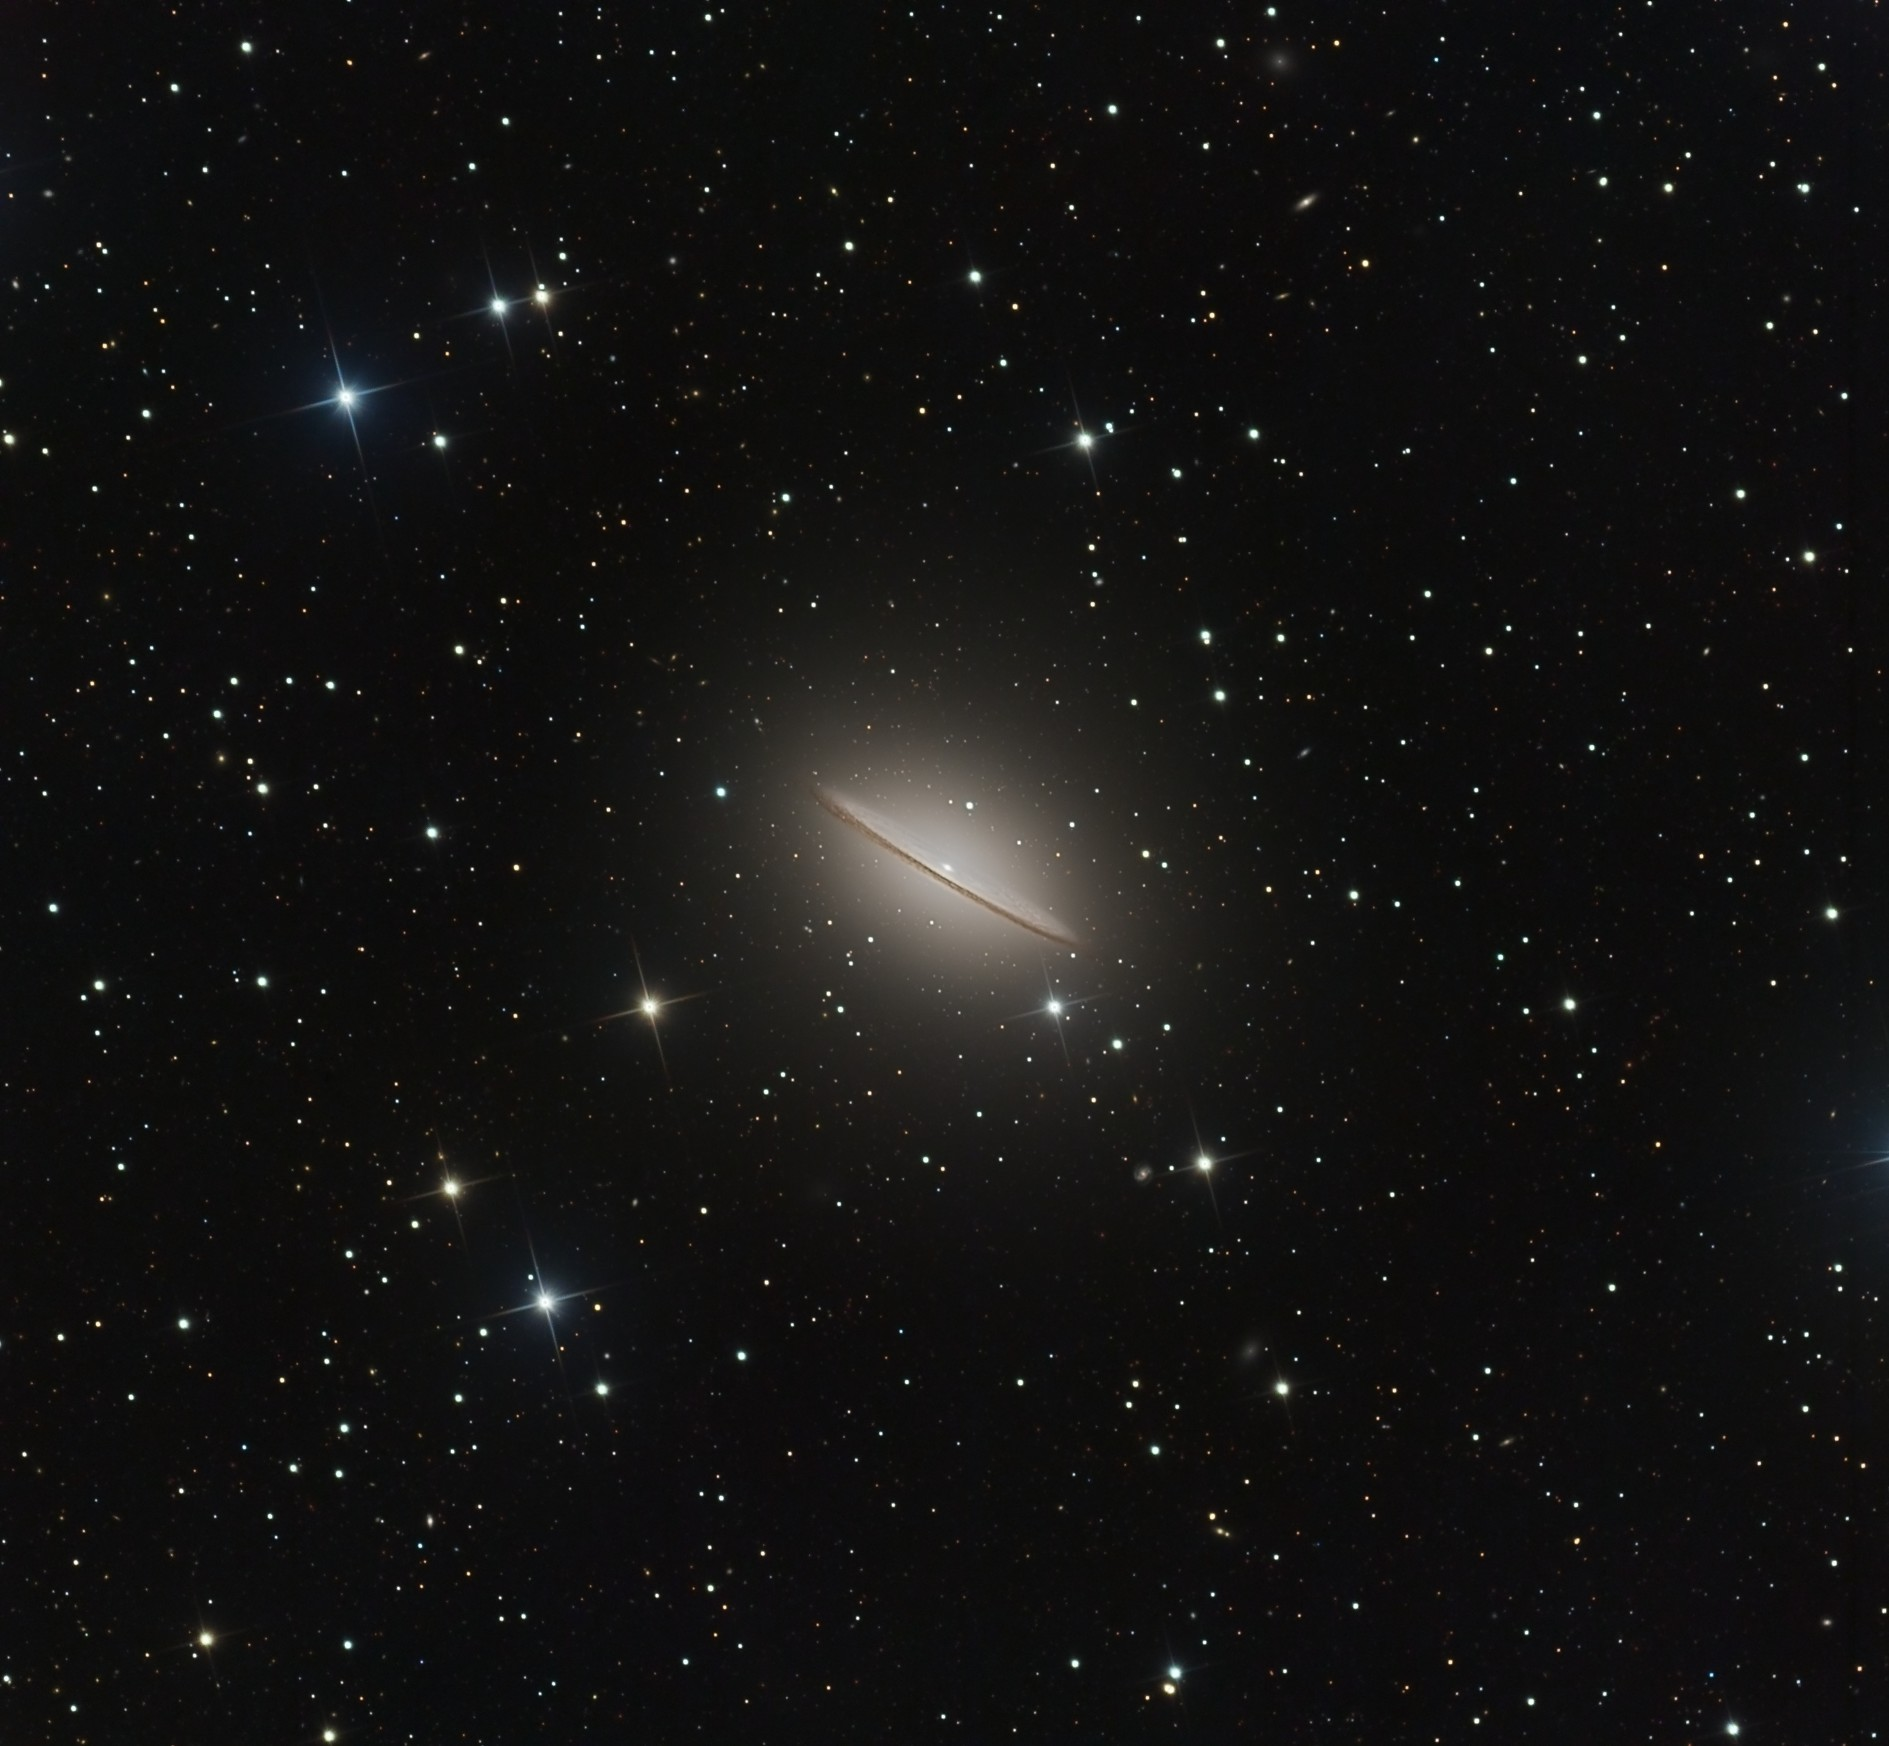 Astrophoto Awesome Views Of A Sombrero In Space